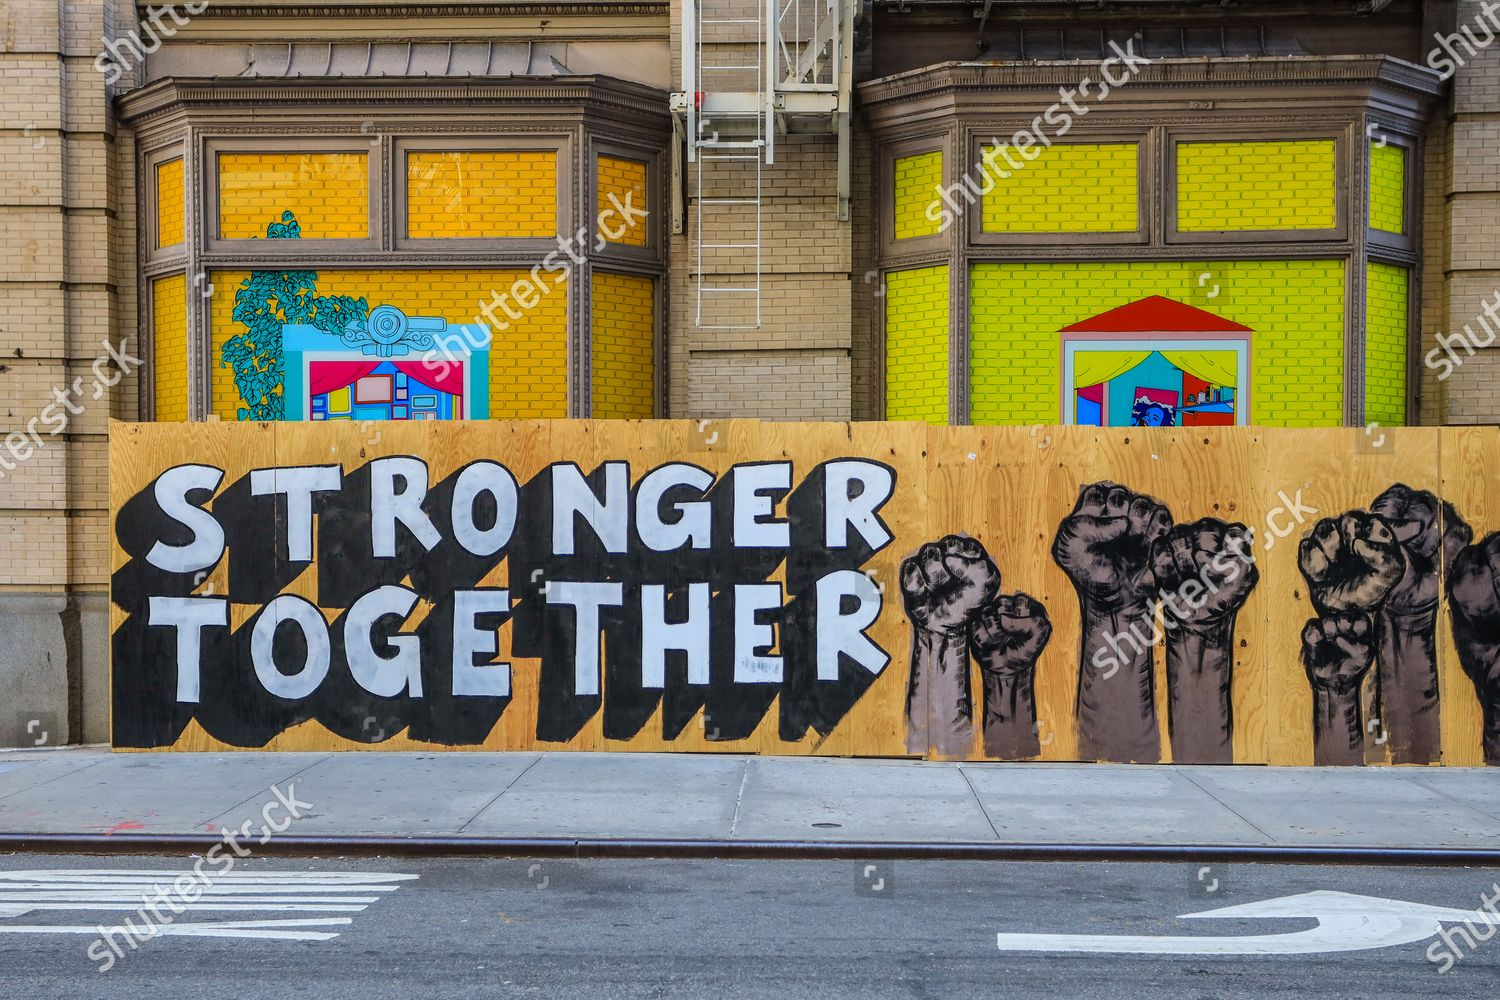 Hd wallpapers and background images Mural Against Racism Phrases Black Lives Matter Editorial Stock Photo Stock Image Shutterstock